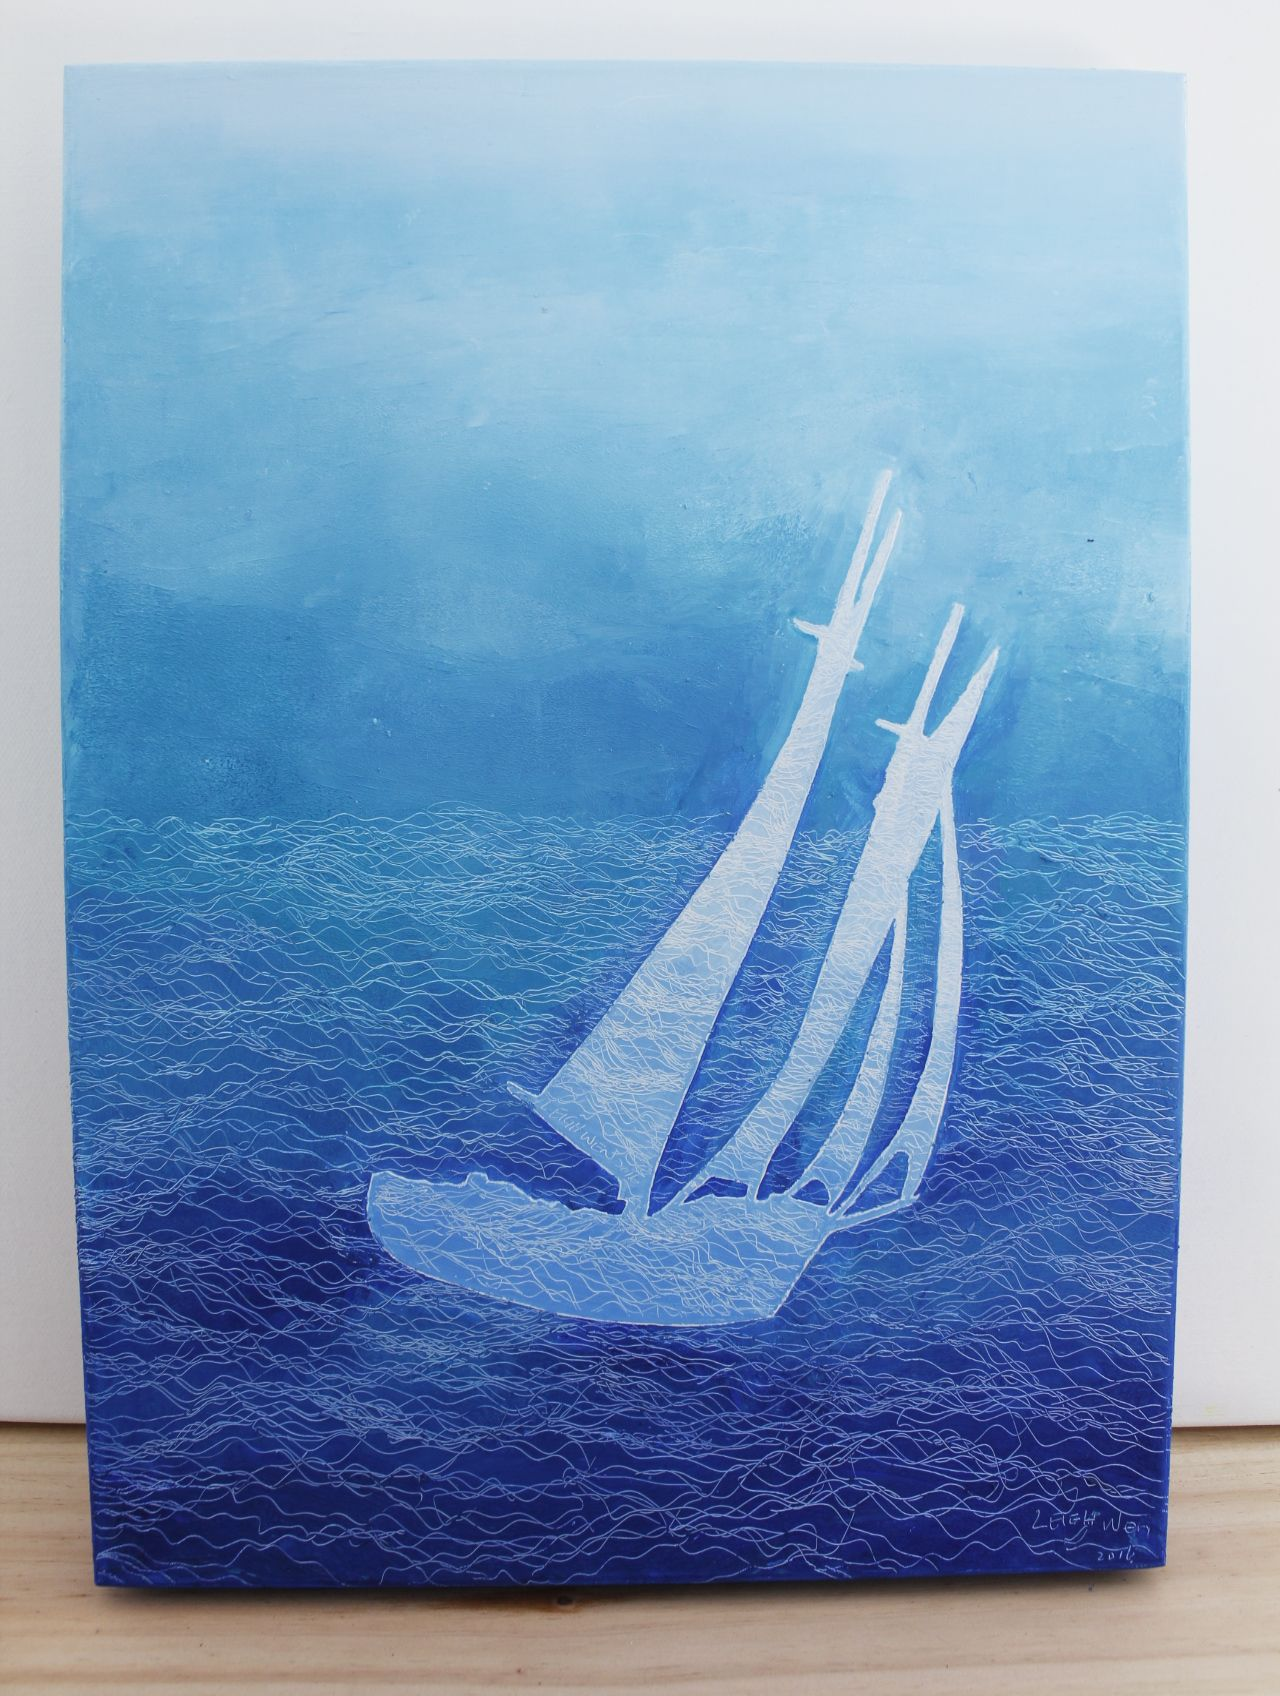 帆行 3, Sail 3, 45 x 33 cm (8P), oil on linen, 2016